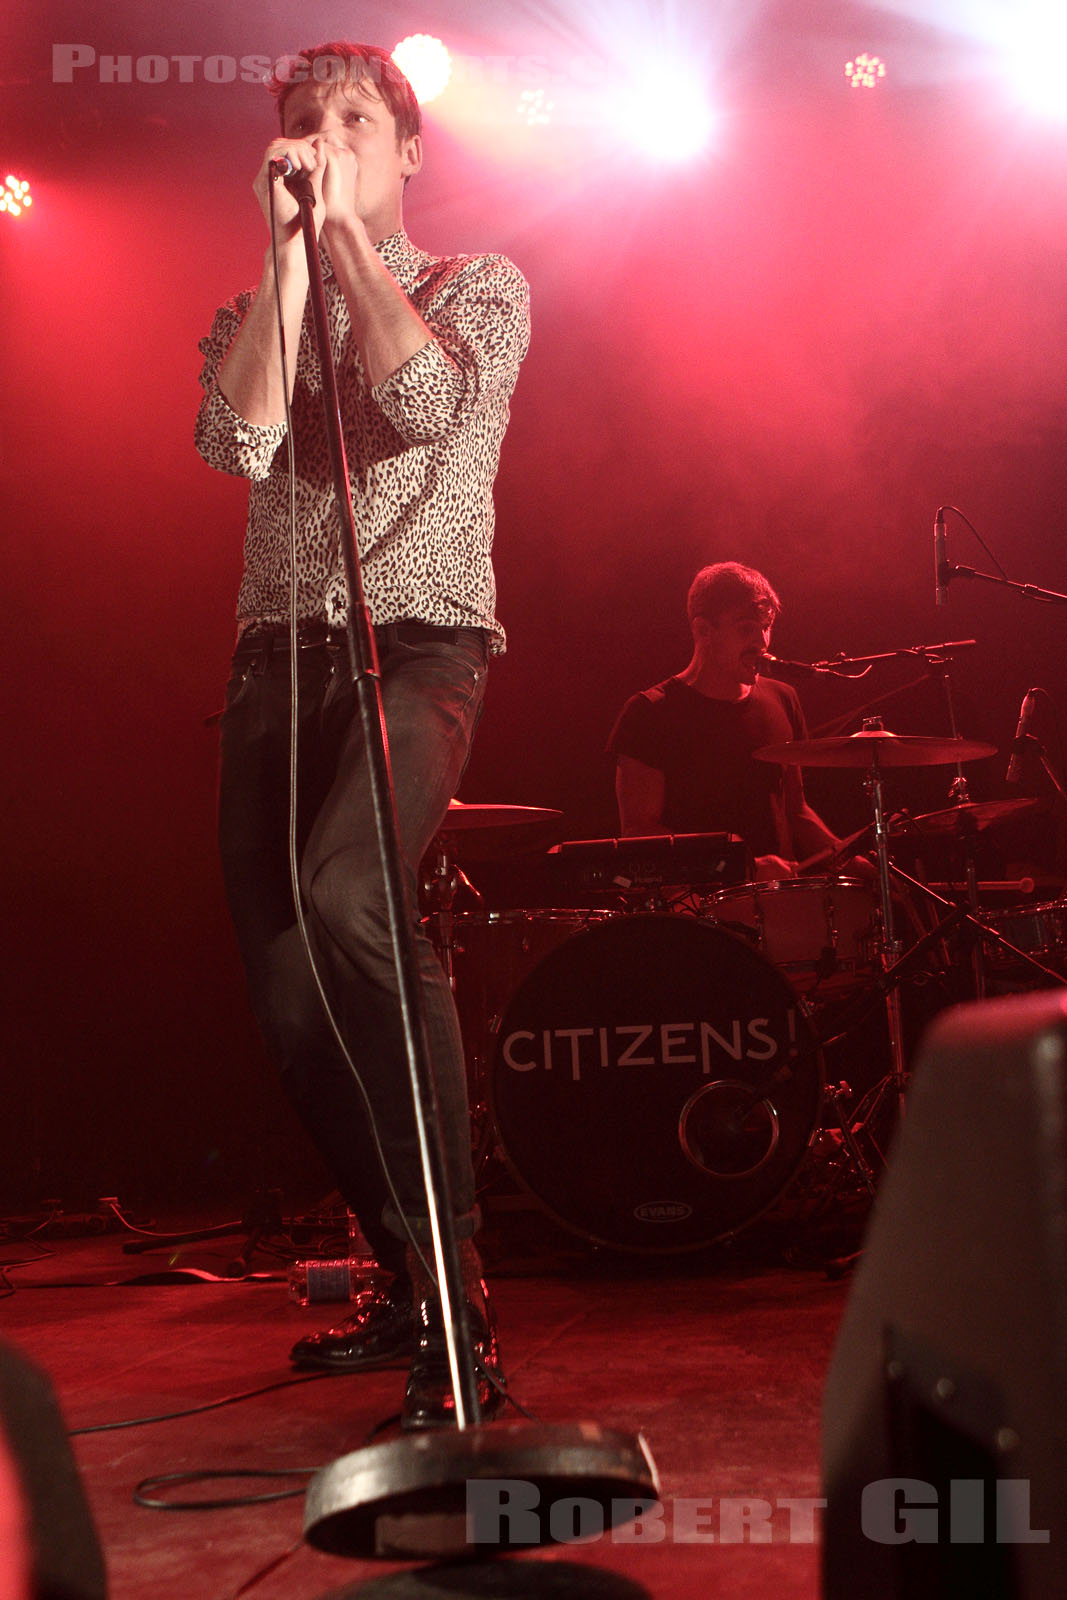 CITIZENS! - 2012-11-08 - PARIS - La Cigale